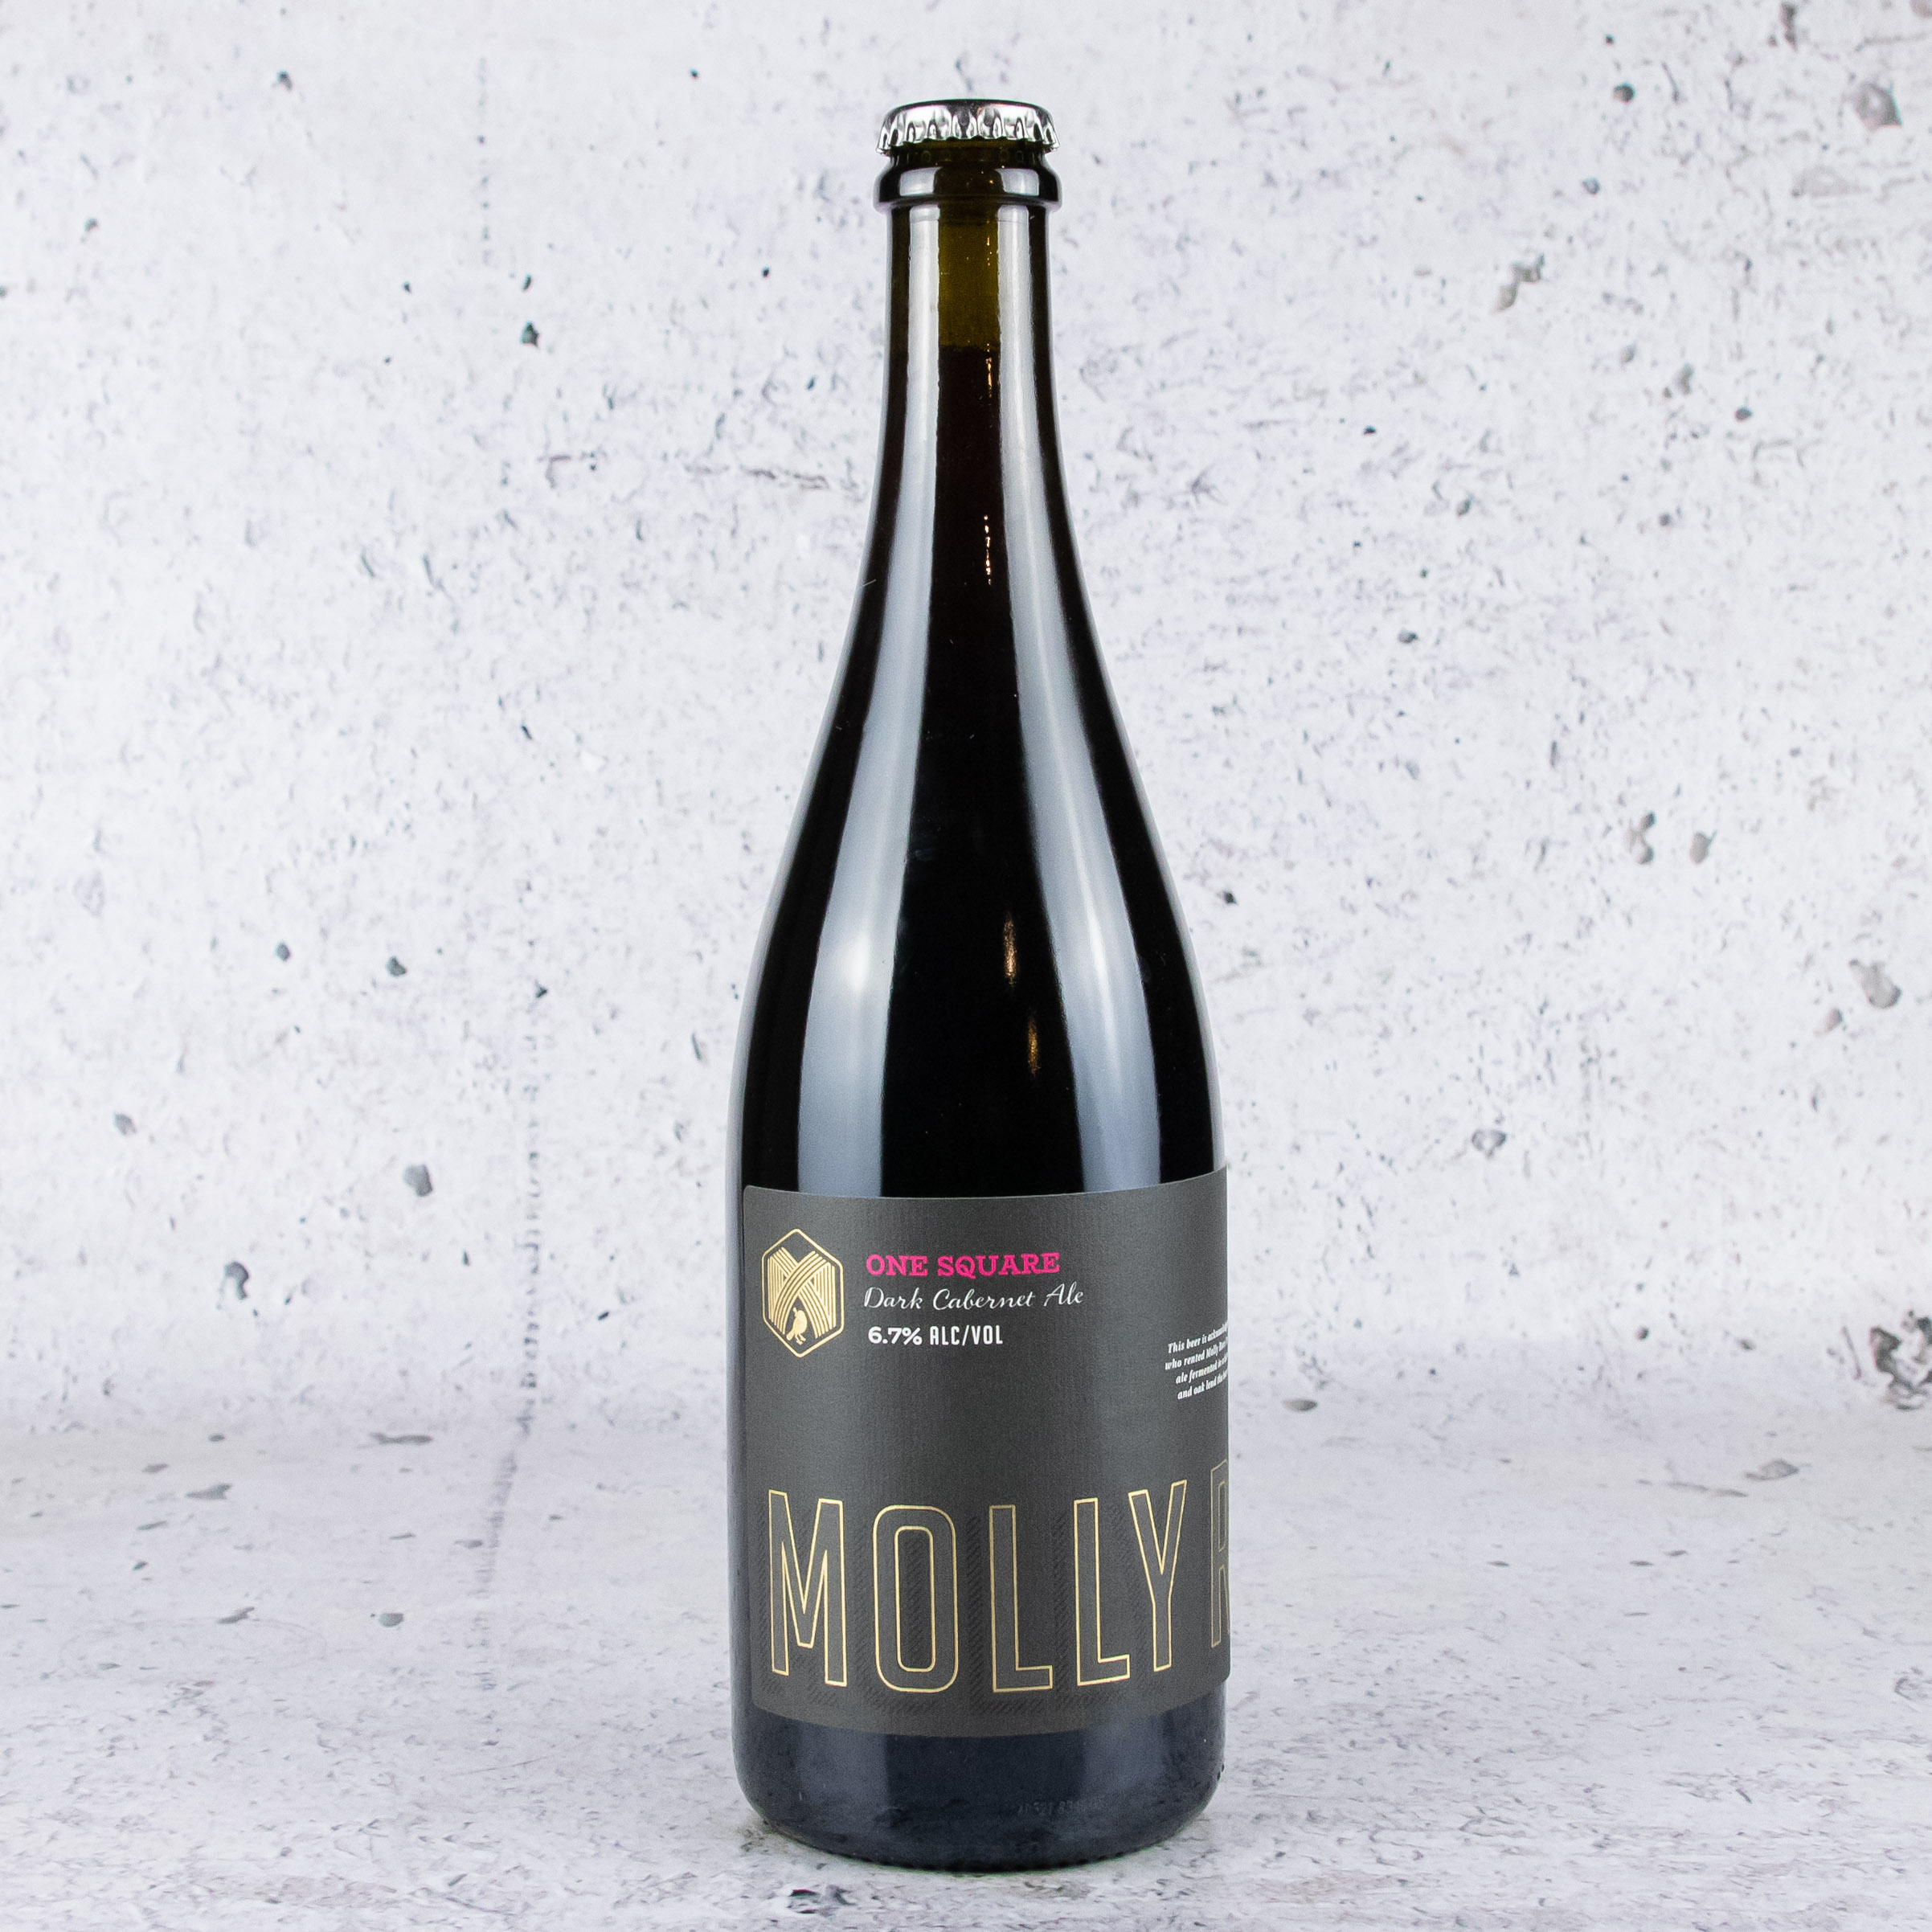 Molly Rose One Square Dark Cabernet Ale